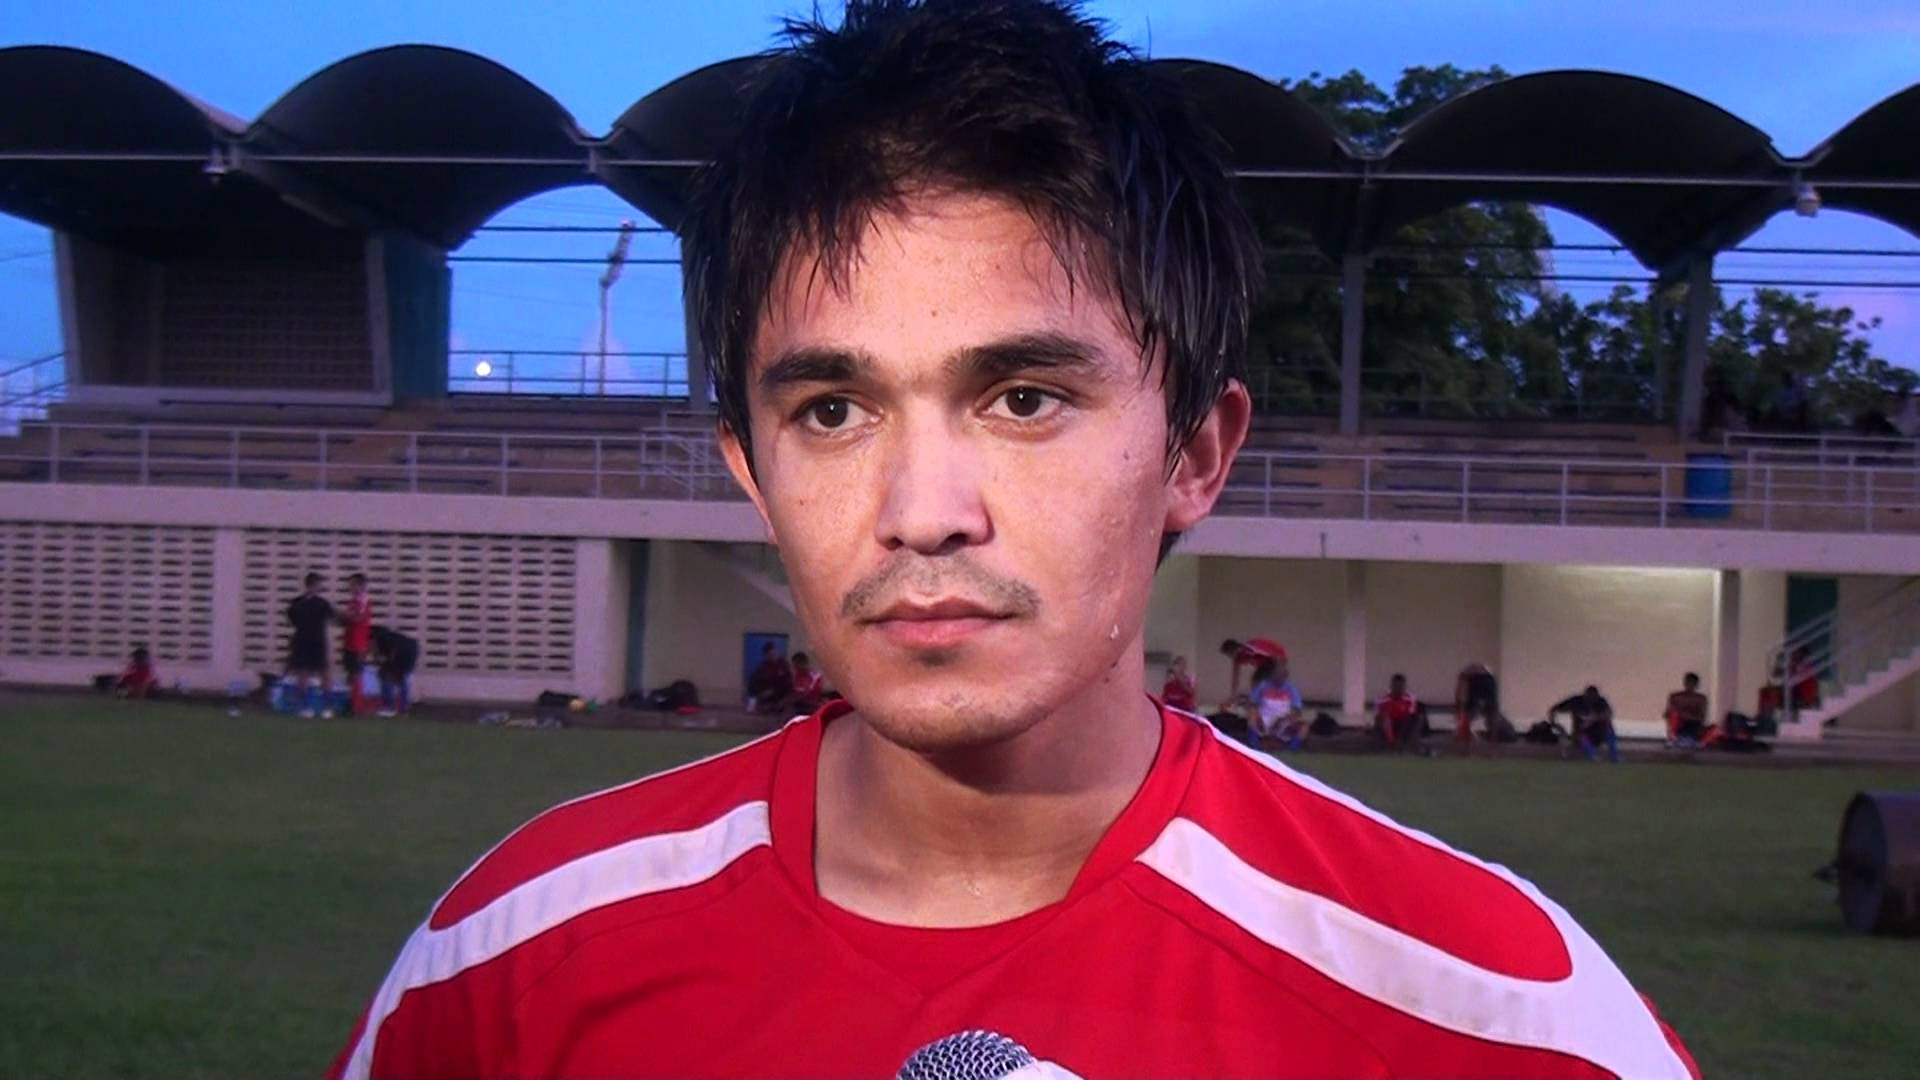 Chhetri becomes the First Indian Footballer to Score 50 International Goals